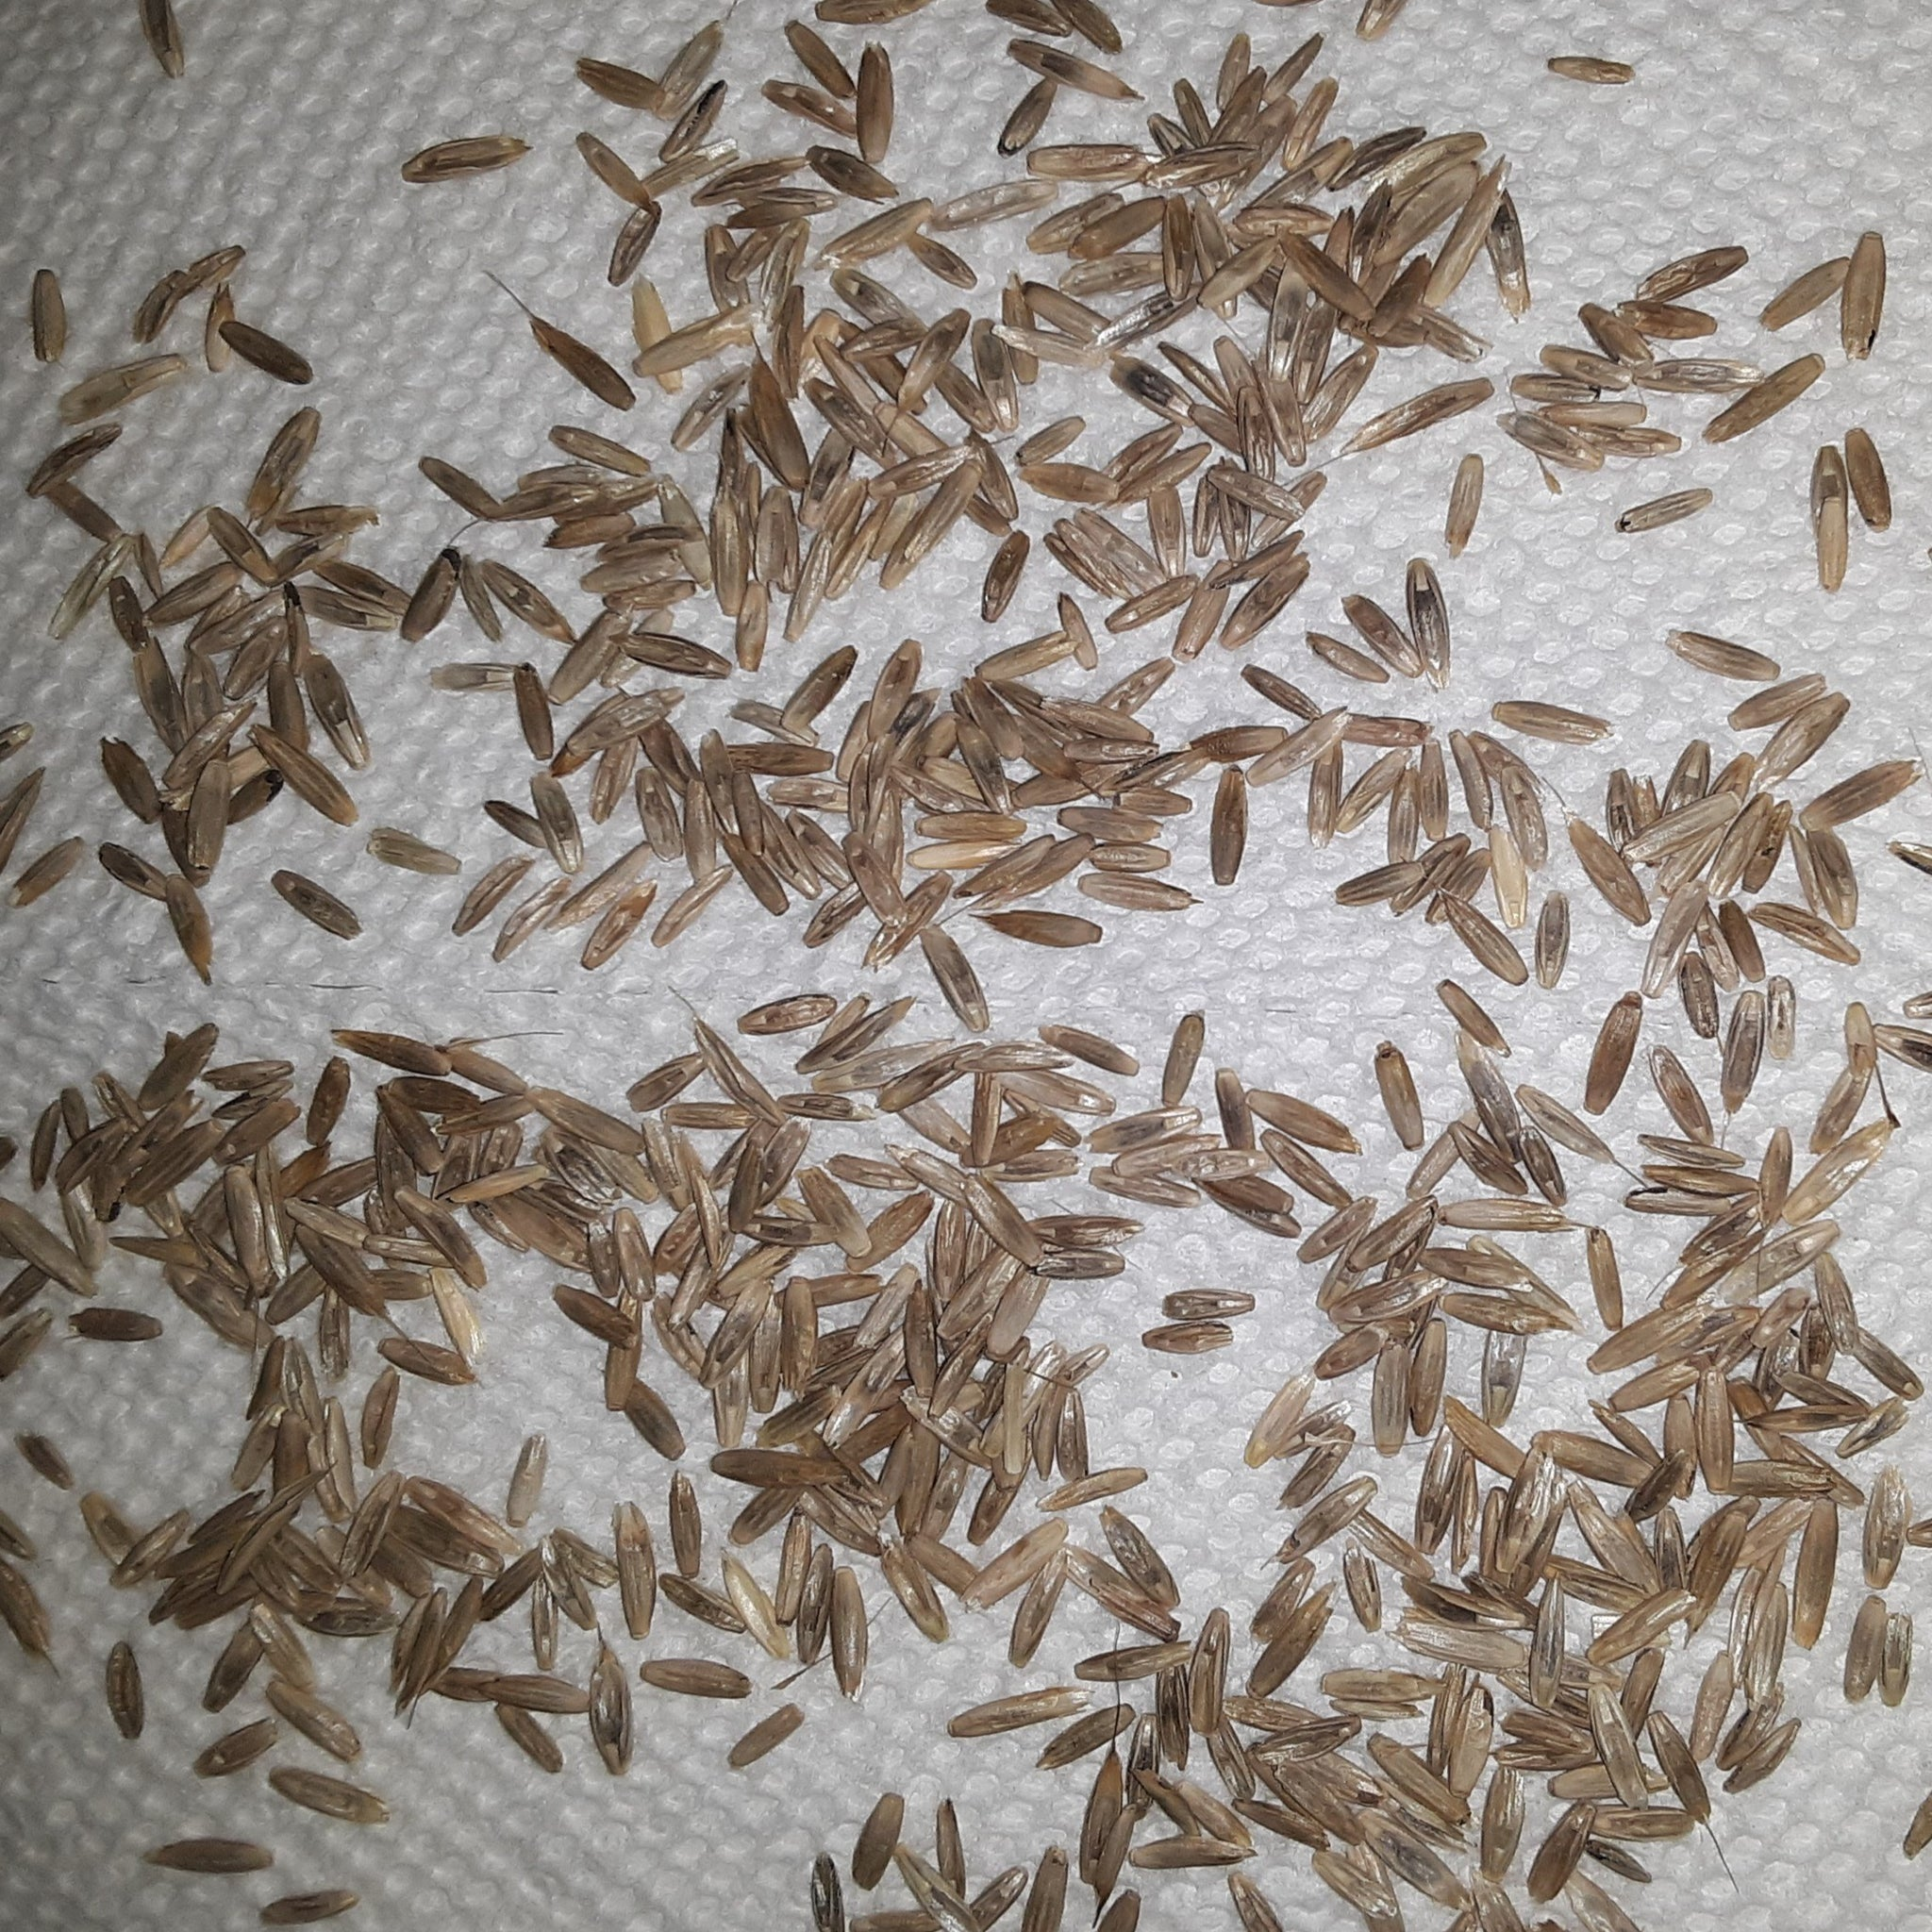 Annual Rye Grass Cover Crop Seeds